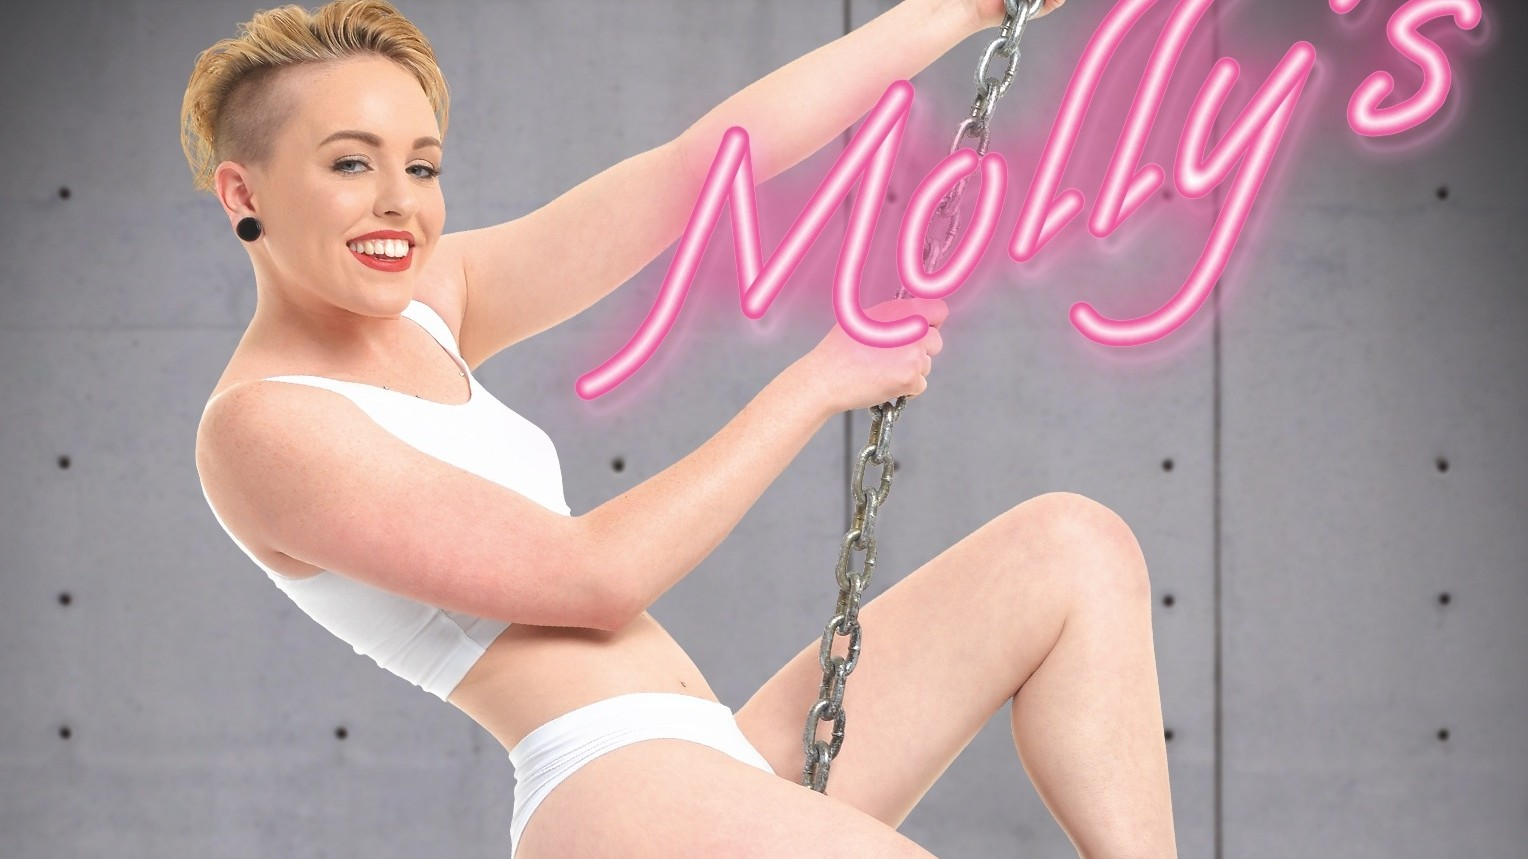 The Trailer For The Inevitable Miley Cyrus Porn Parody Is Here